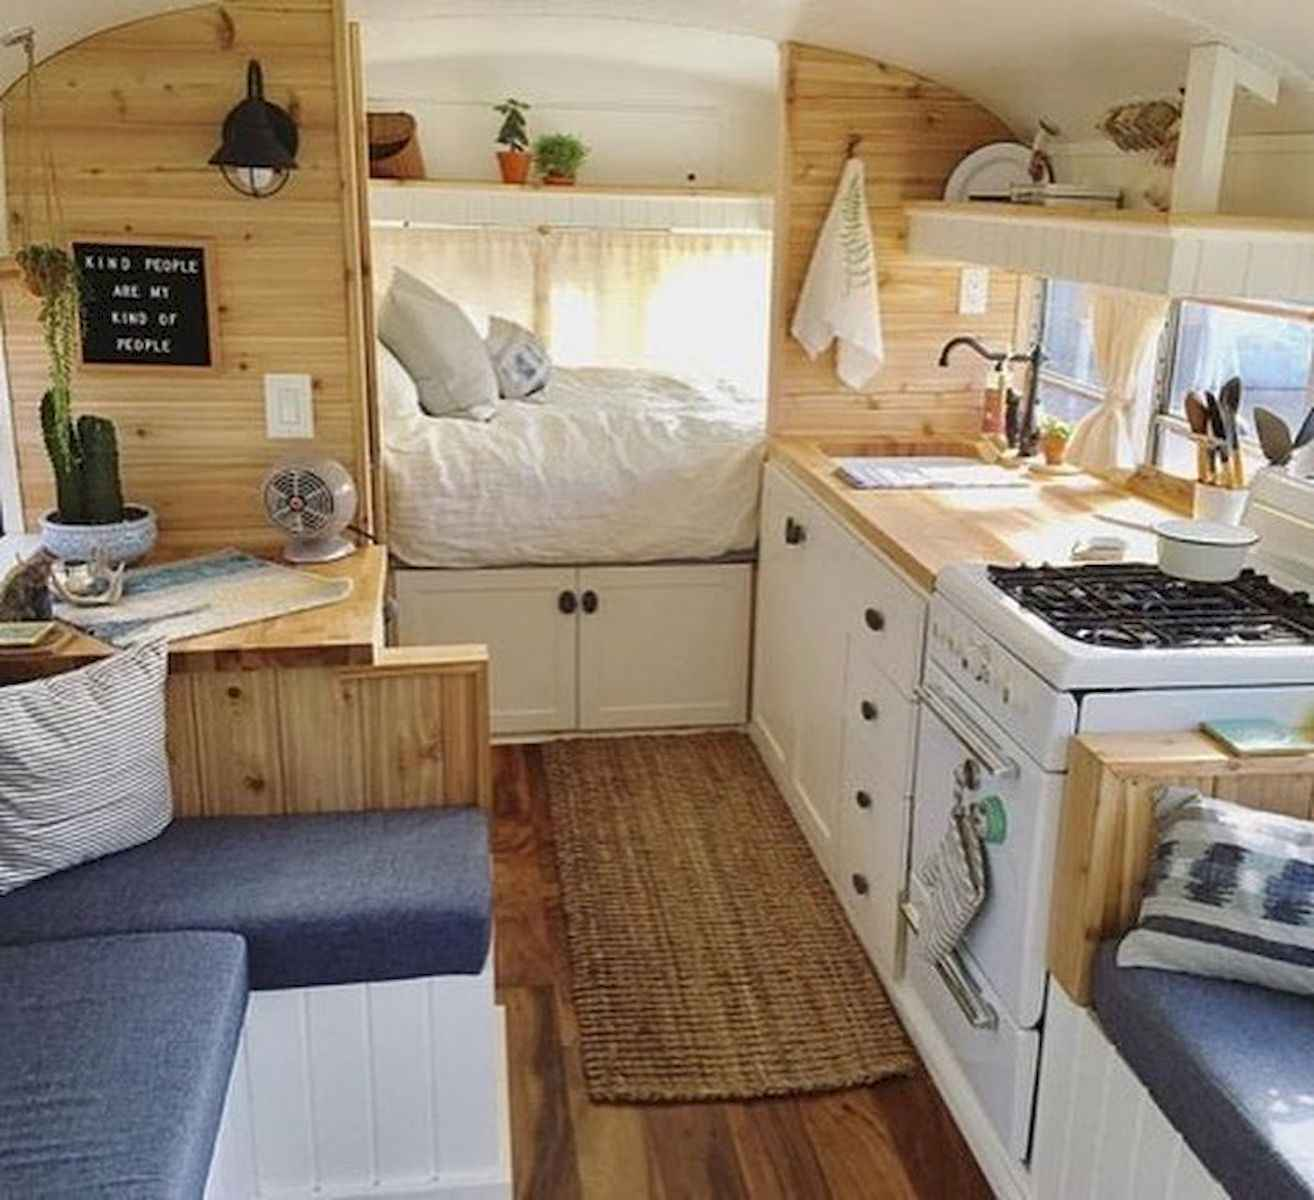 70 Stunning RV Living Camper Room Ideas Decorations Make Your Summer Awesome (14)